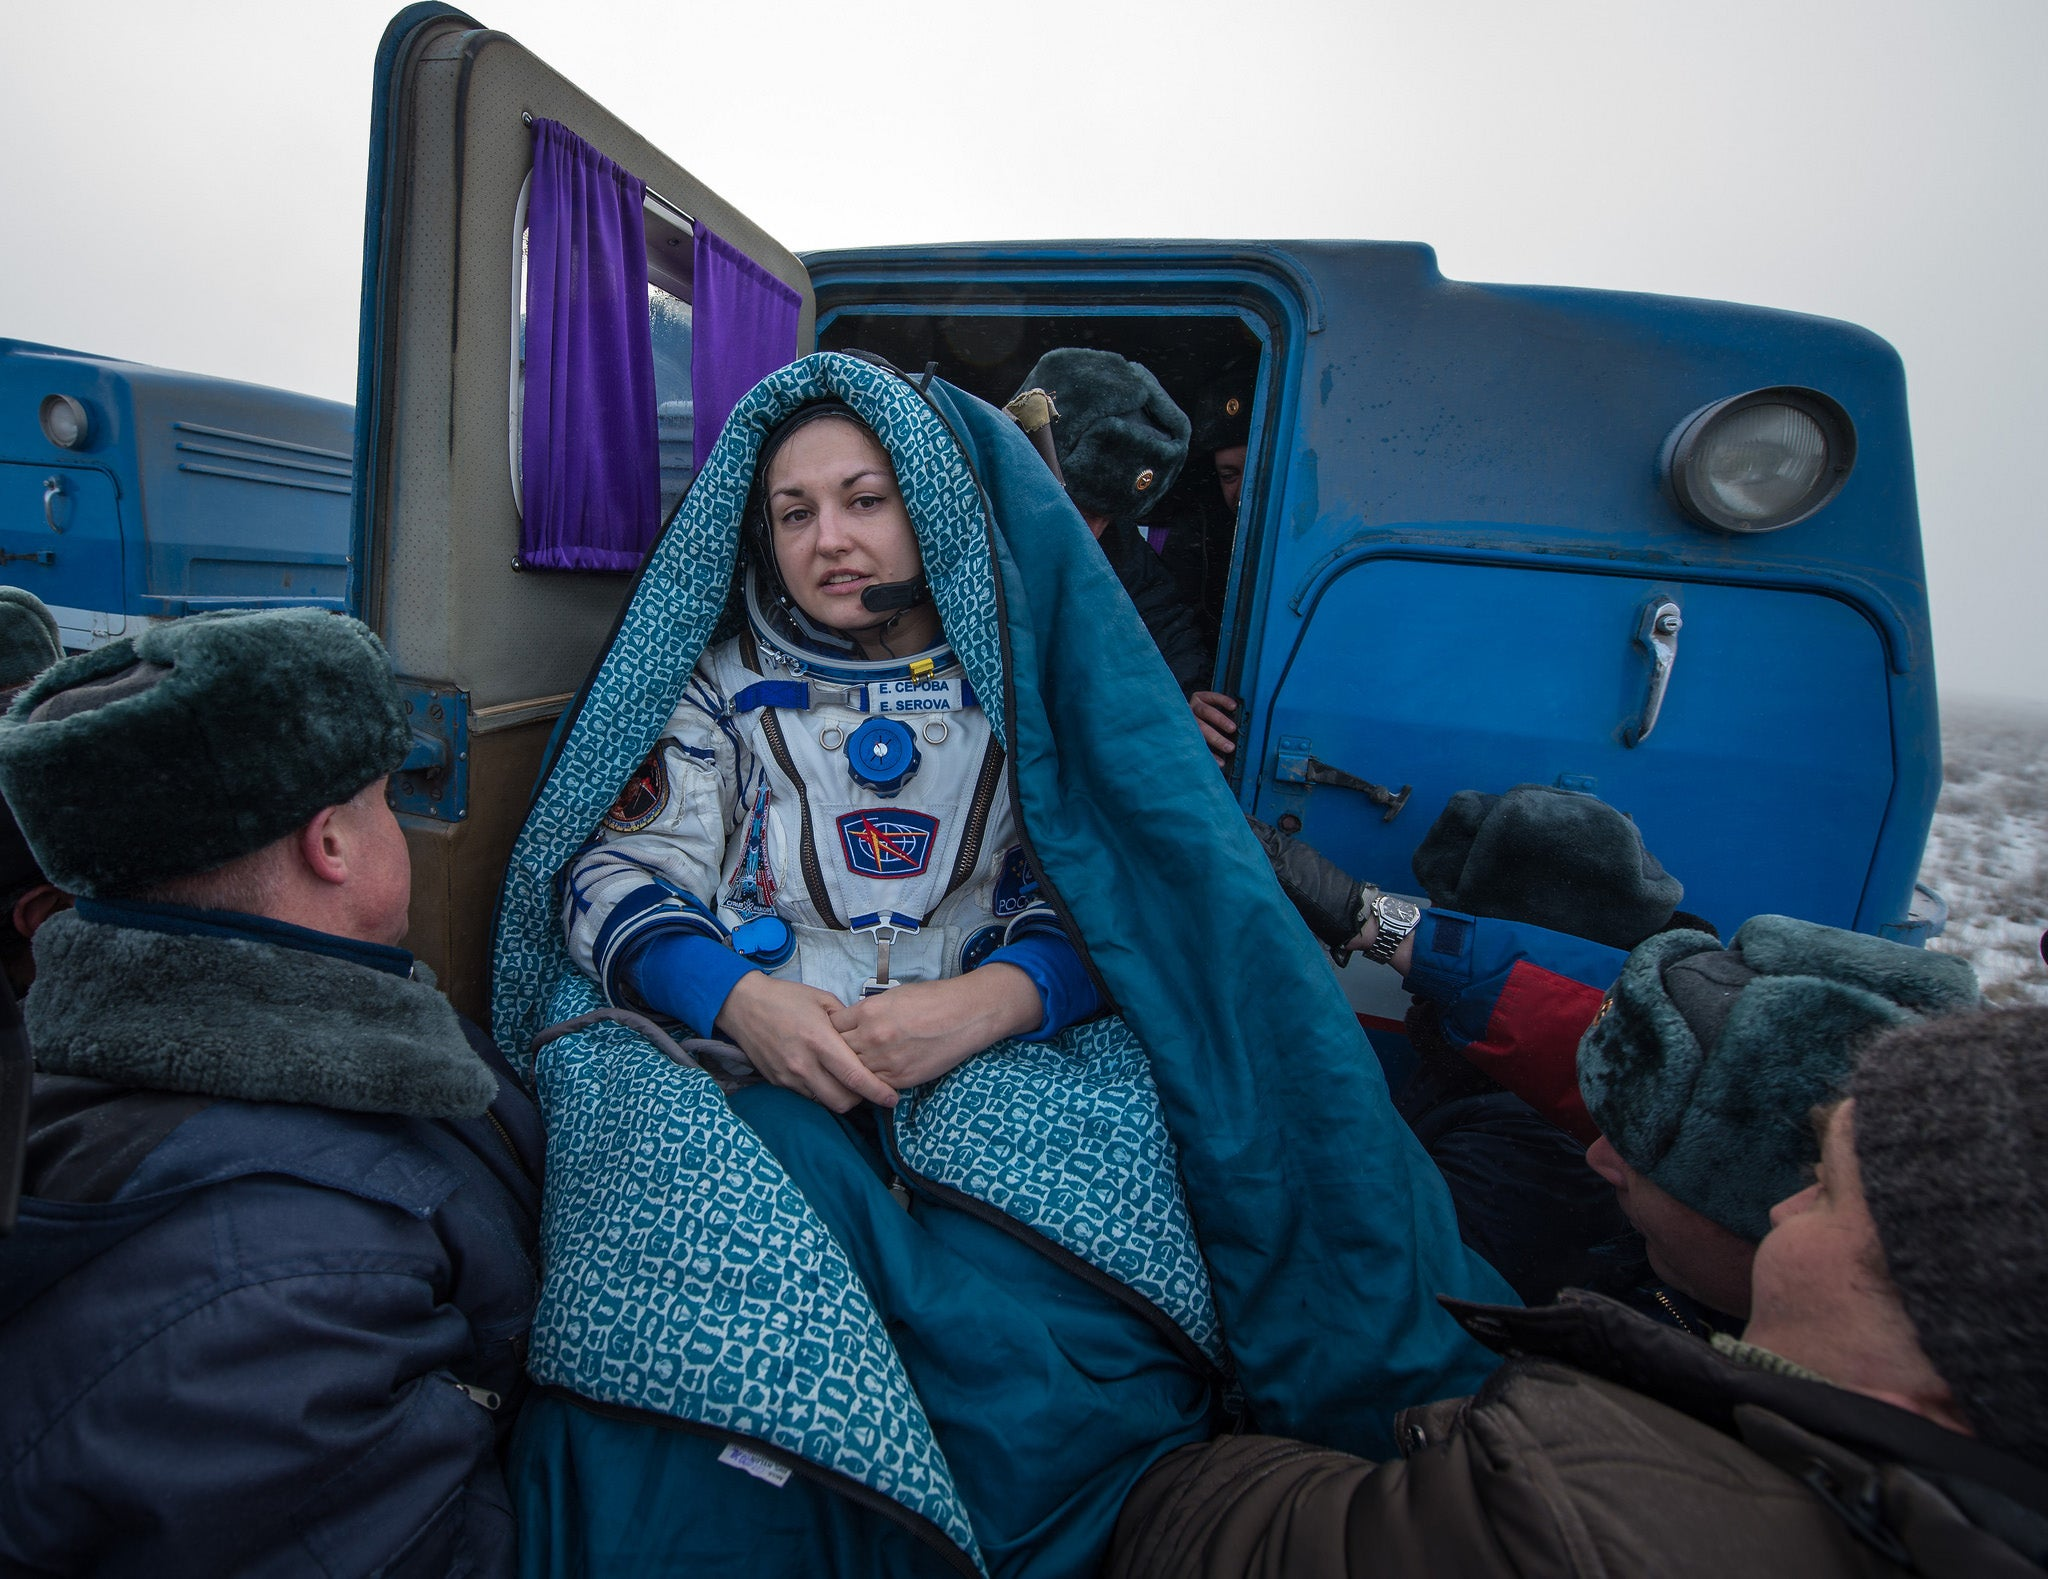 This Photo Of A Russian Cosmonaut Looks Like A Renaissance Painting